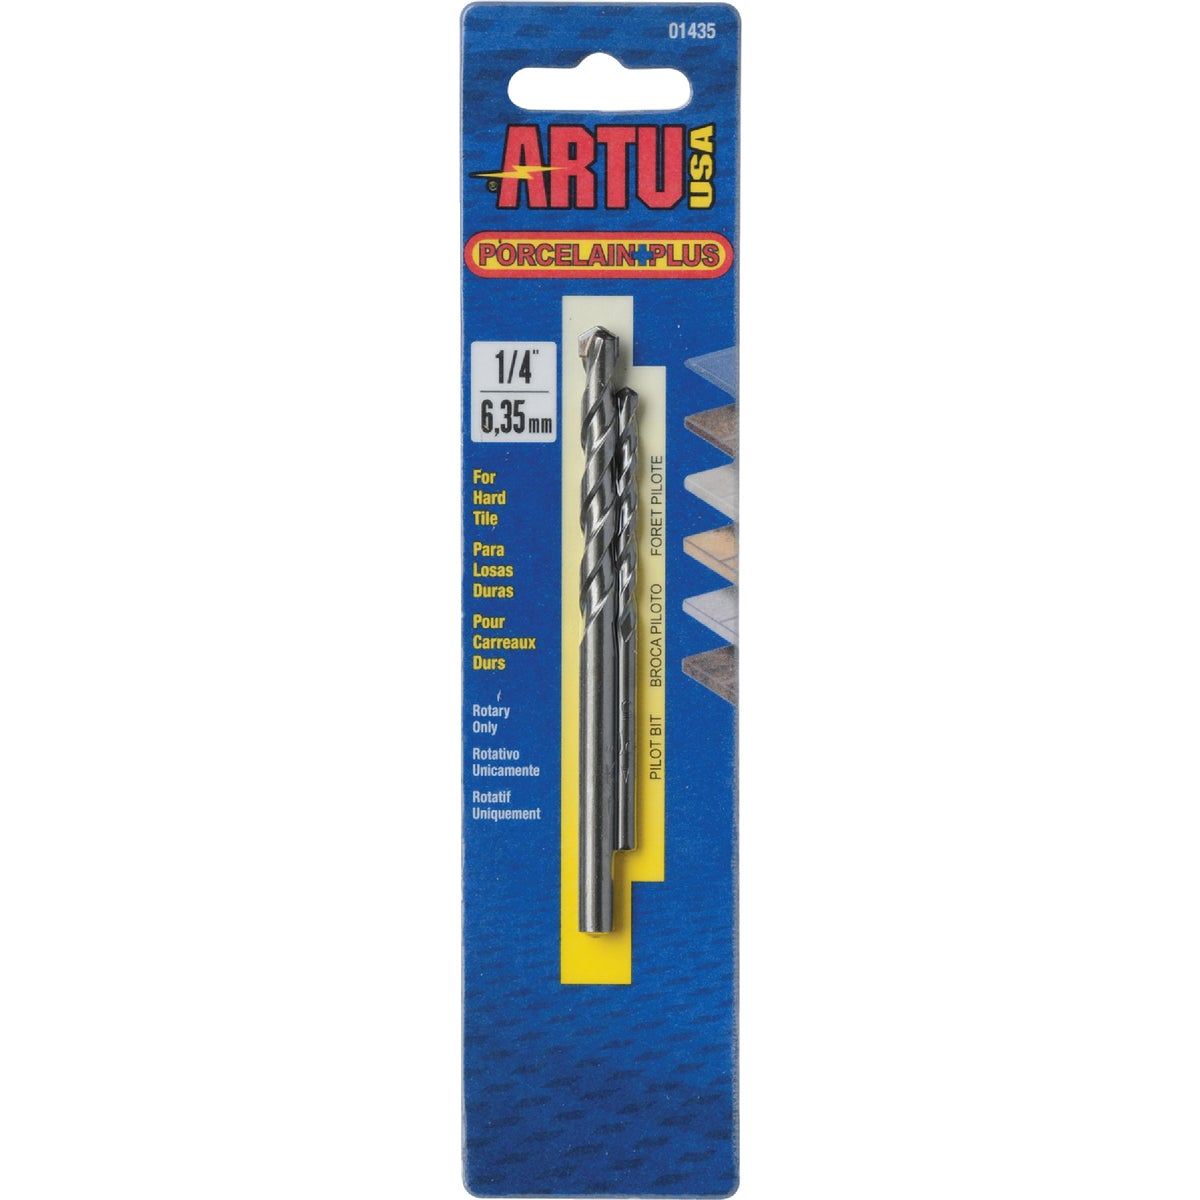 "1/4"" PORC AND TILE BIT - 01435 by Artu Usa Inc"